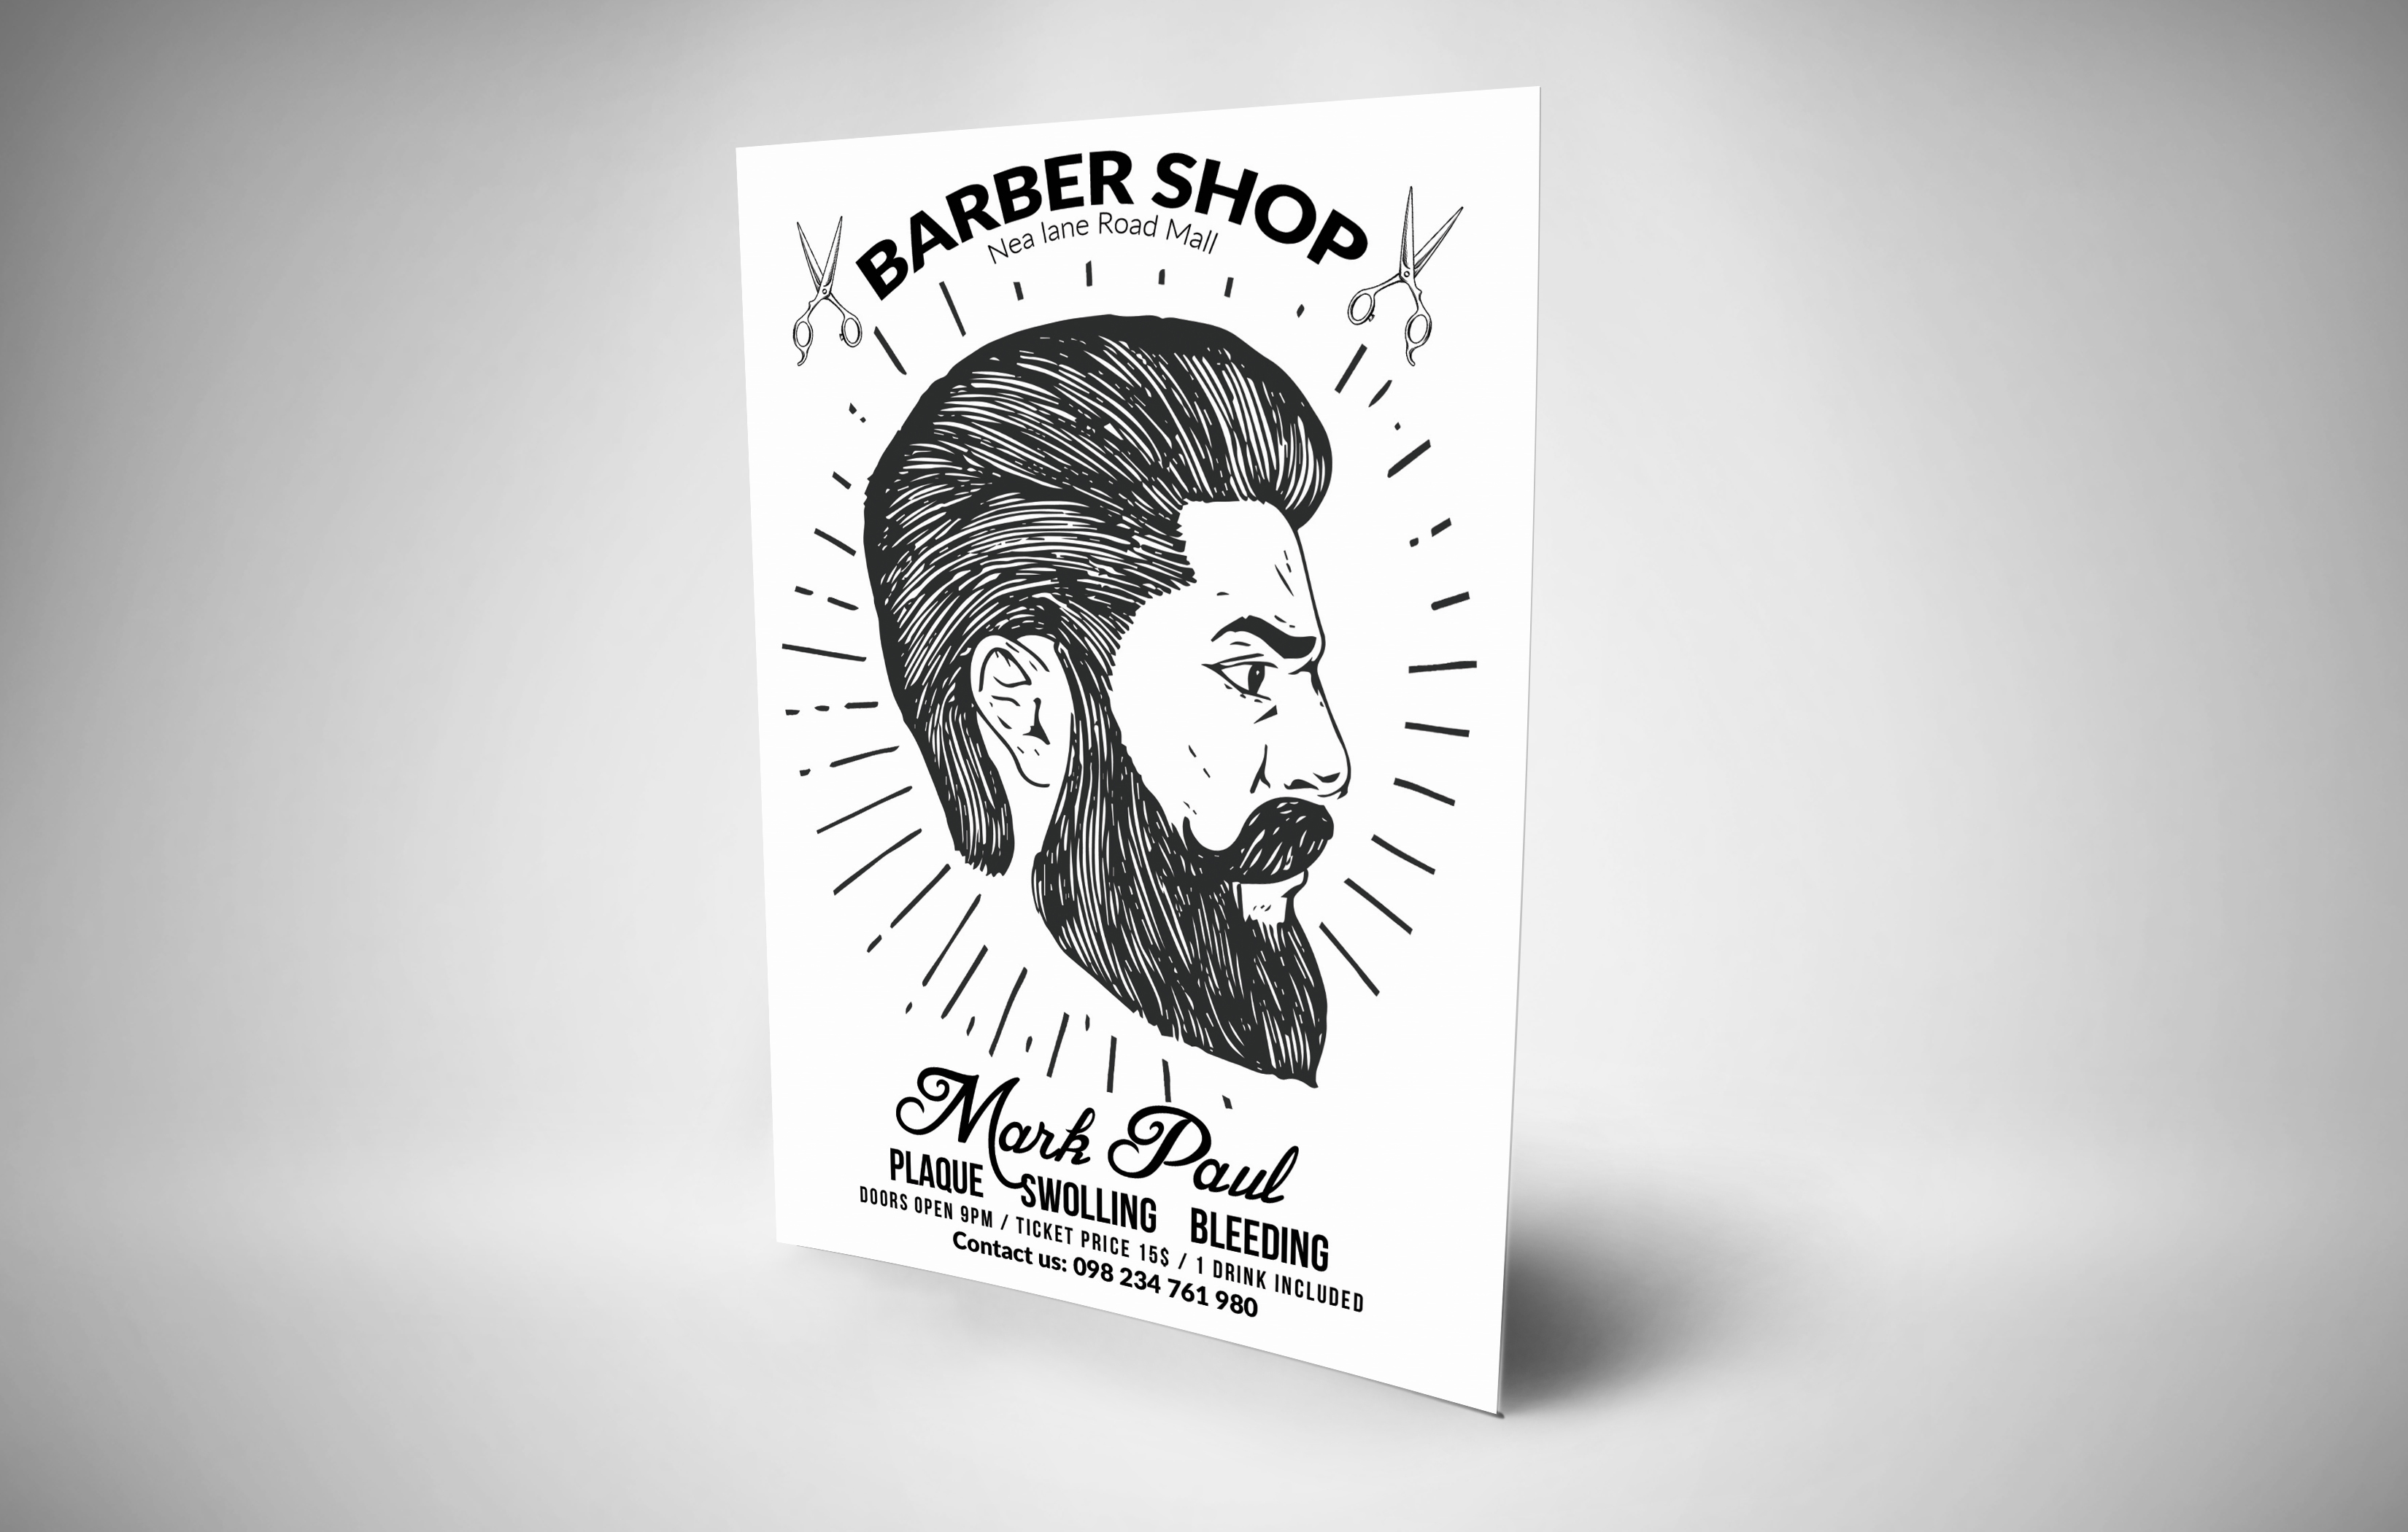 Barber Shop Editable Flyer Templates example image 2